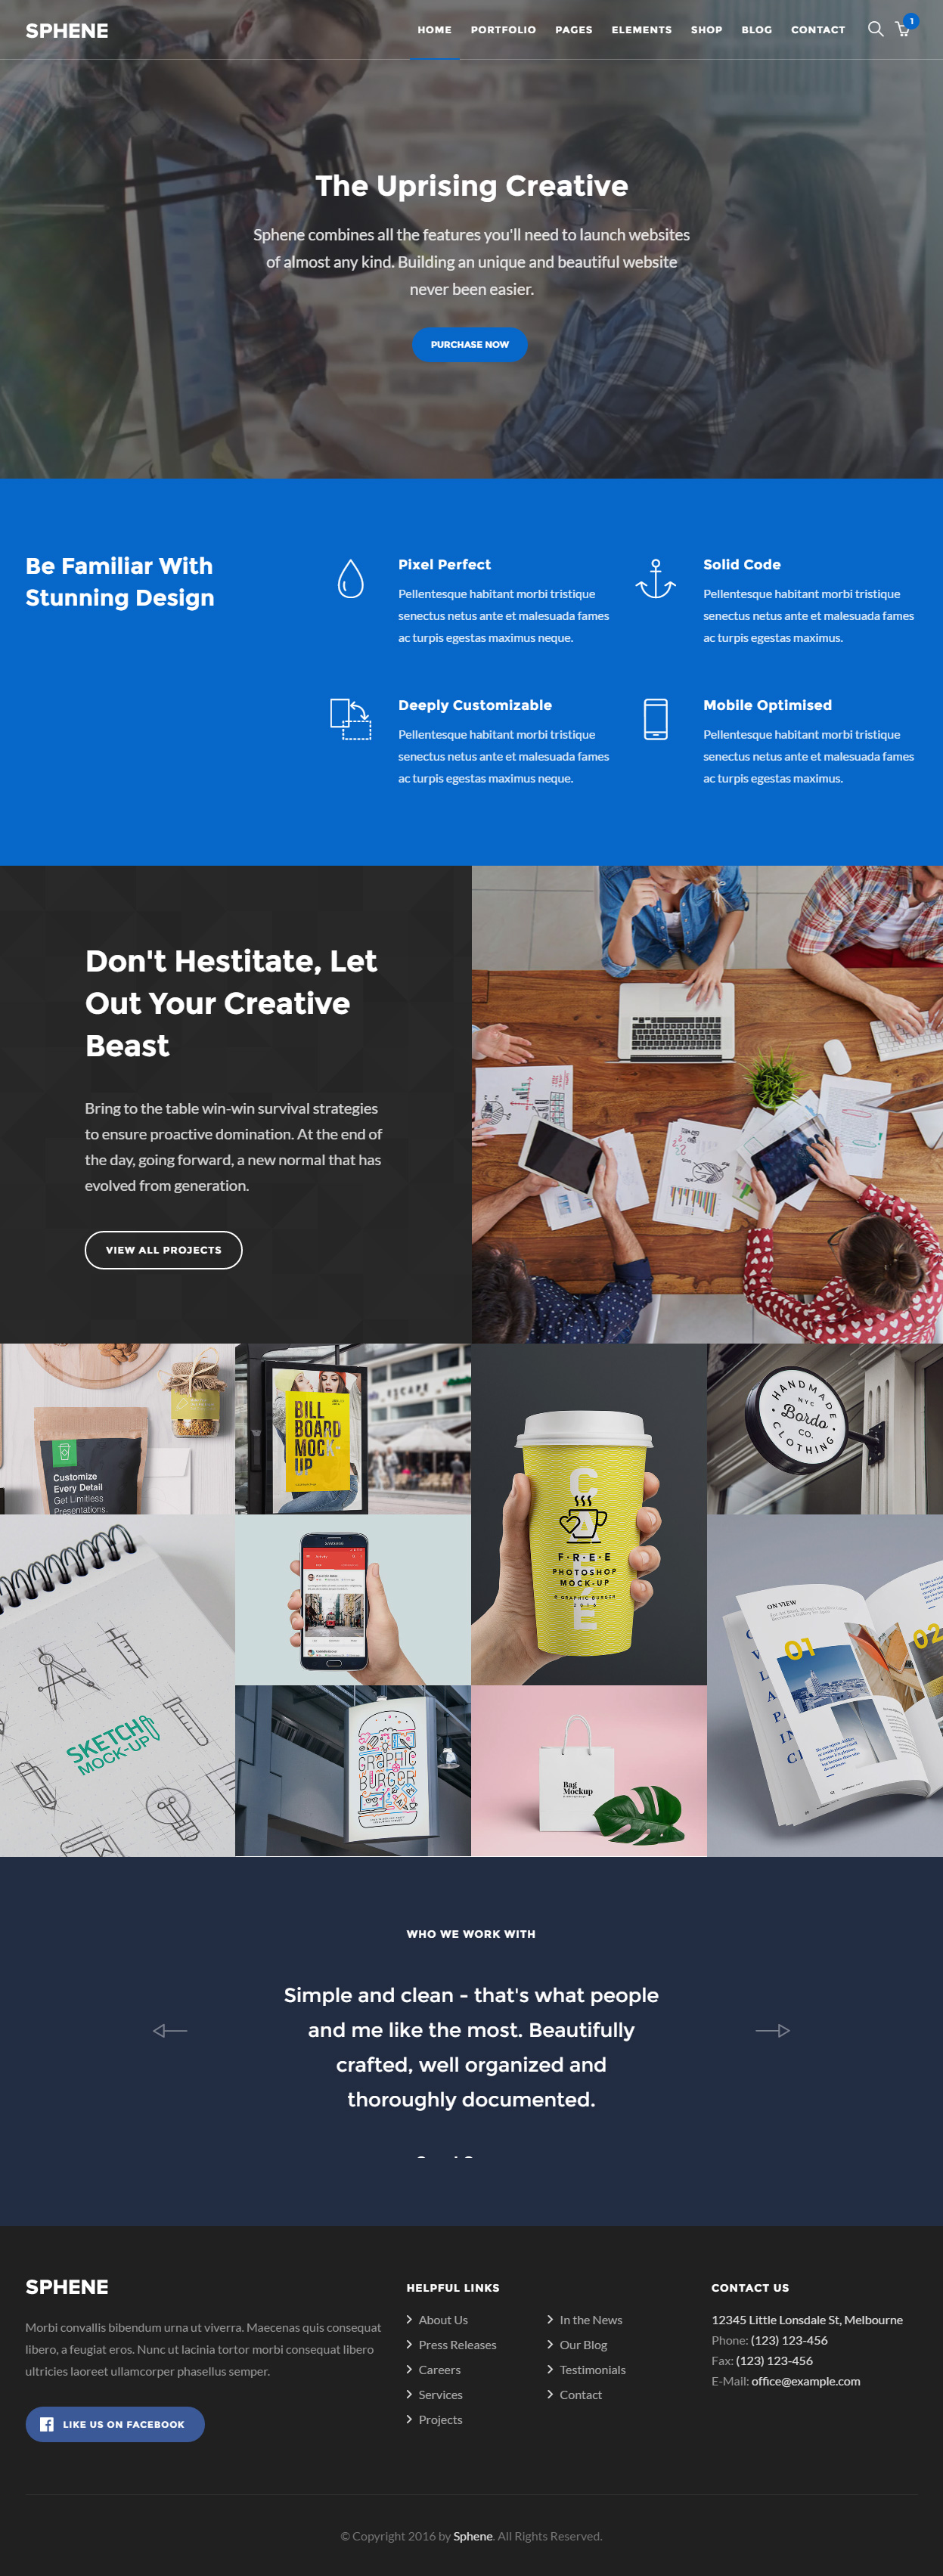 40 Best Responsive HTML5 Agency Templates 2017 - Responsive Miracle